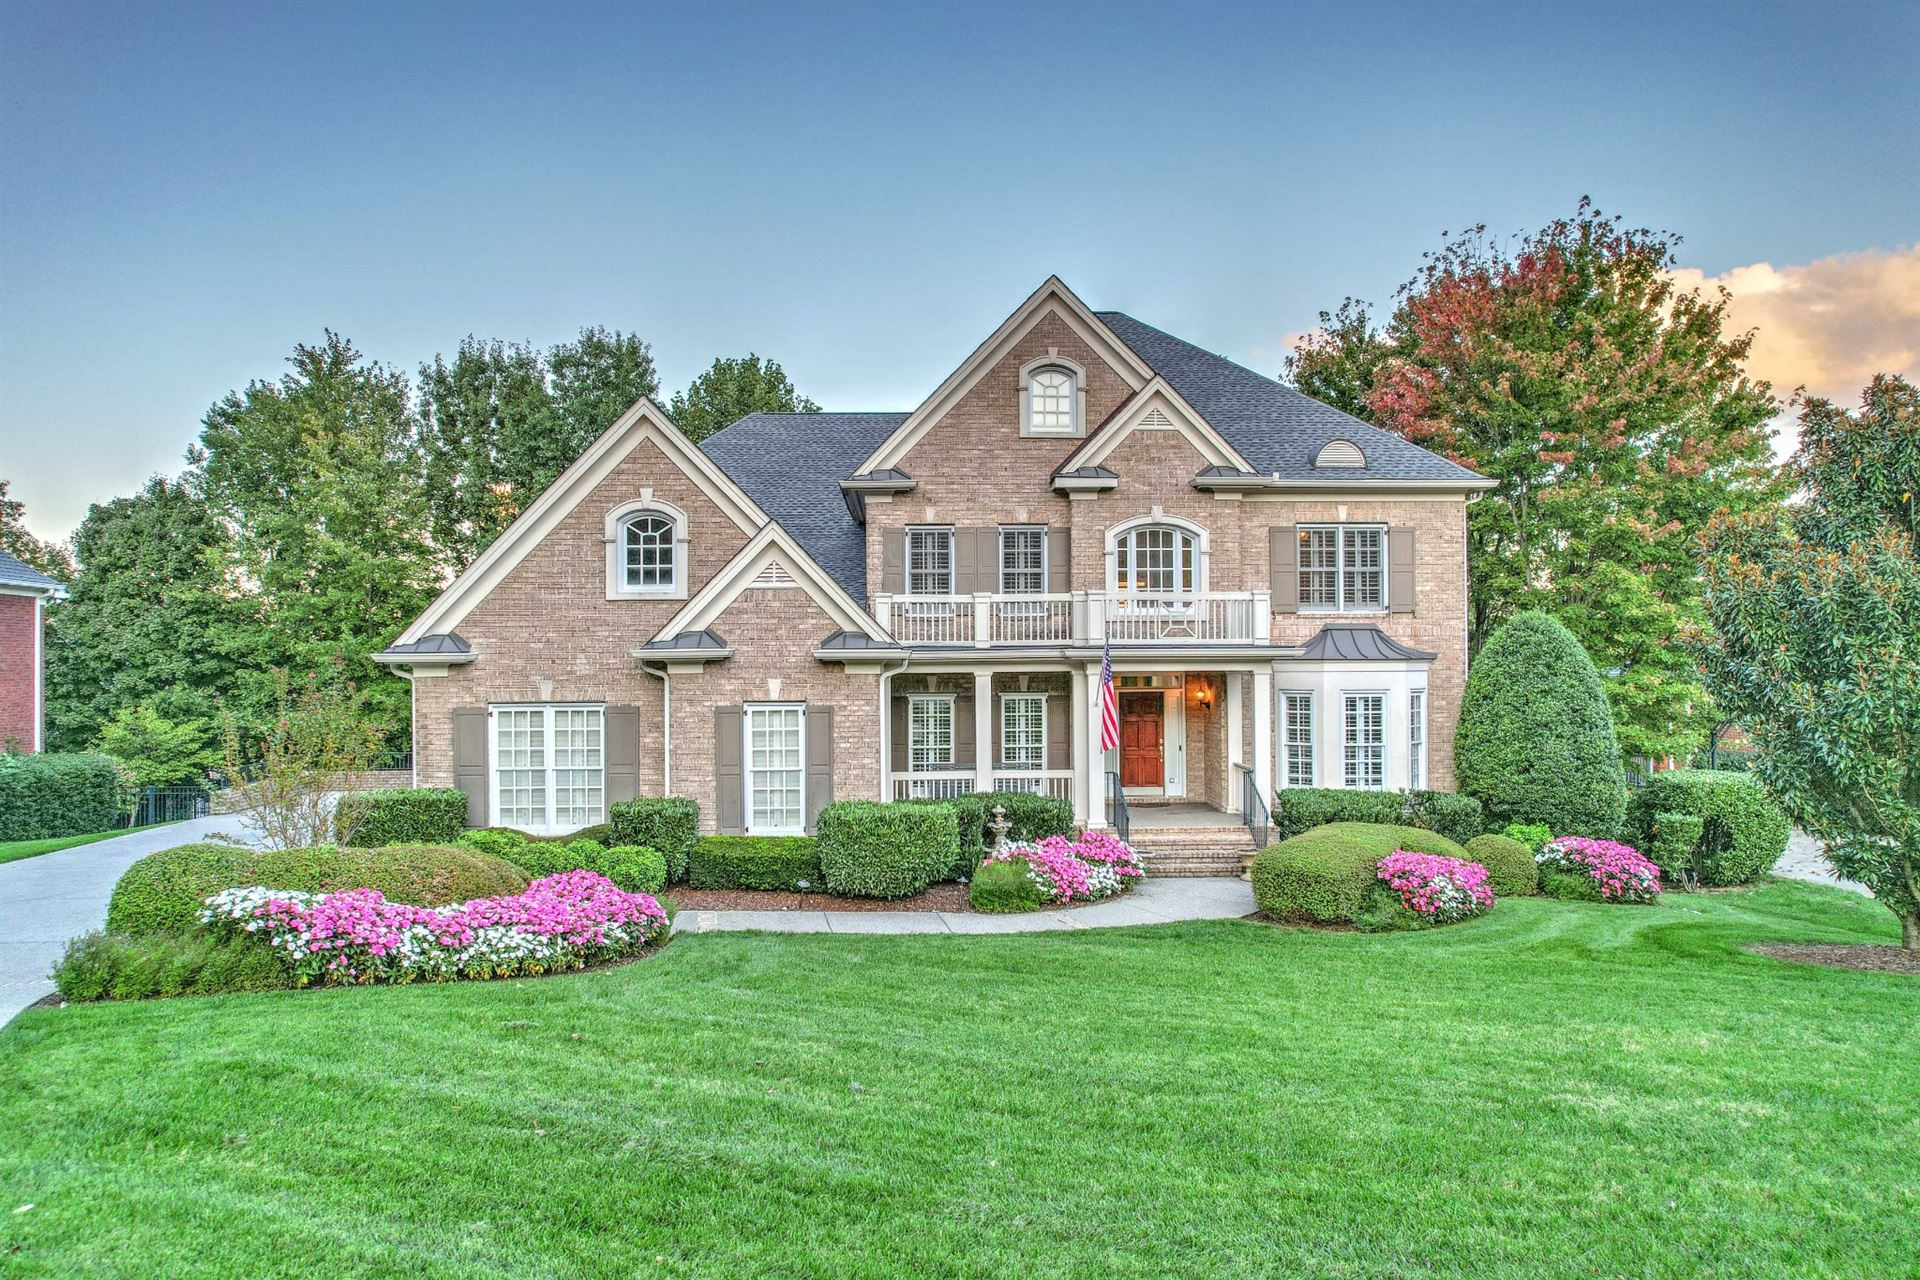 19 Missionary Dr, Brentwood, TN 37027 - MLS#: 2298767